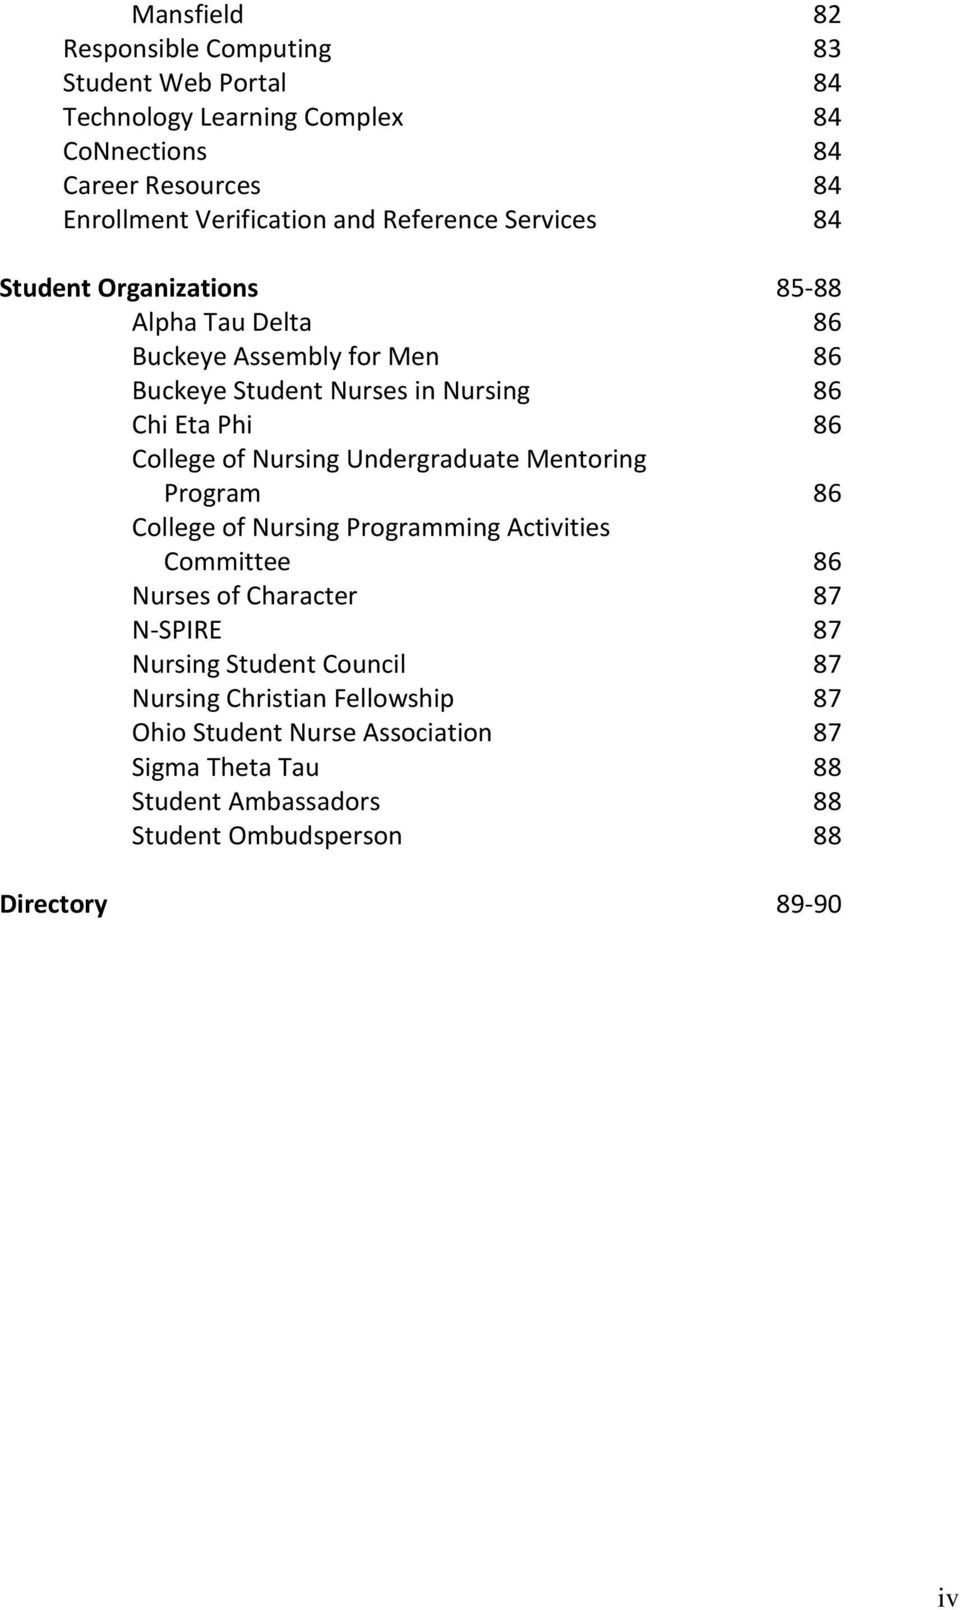 College of Nursing Undergraduate Mentoring Program 86 College of Nursing Programming Activities Committee 86 Nurses of Character 87 N-SPIRE 87 Nursing